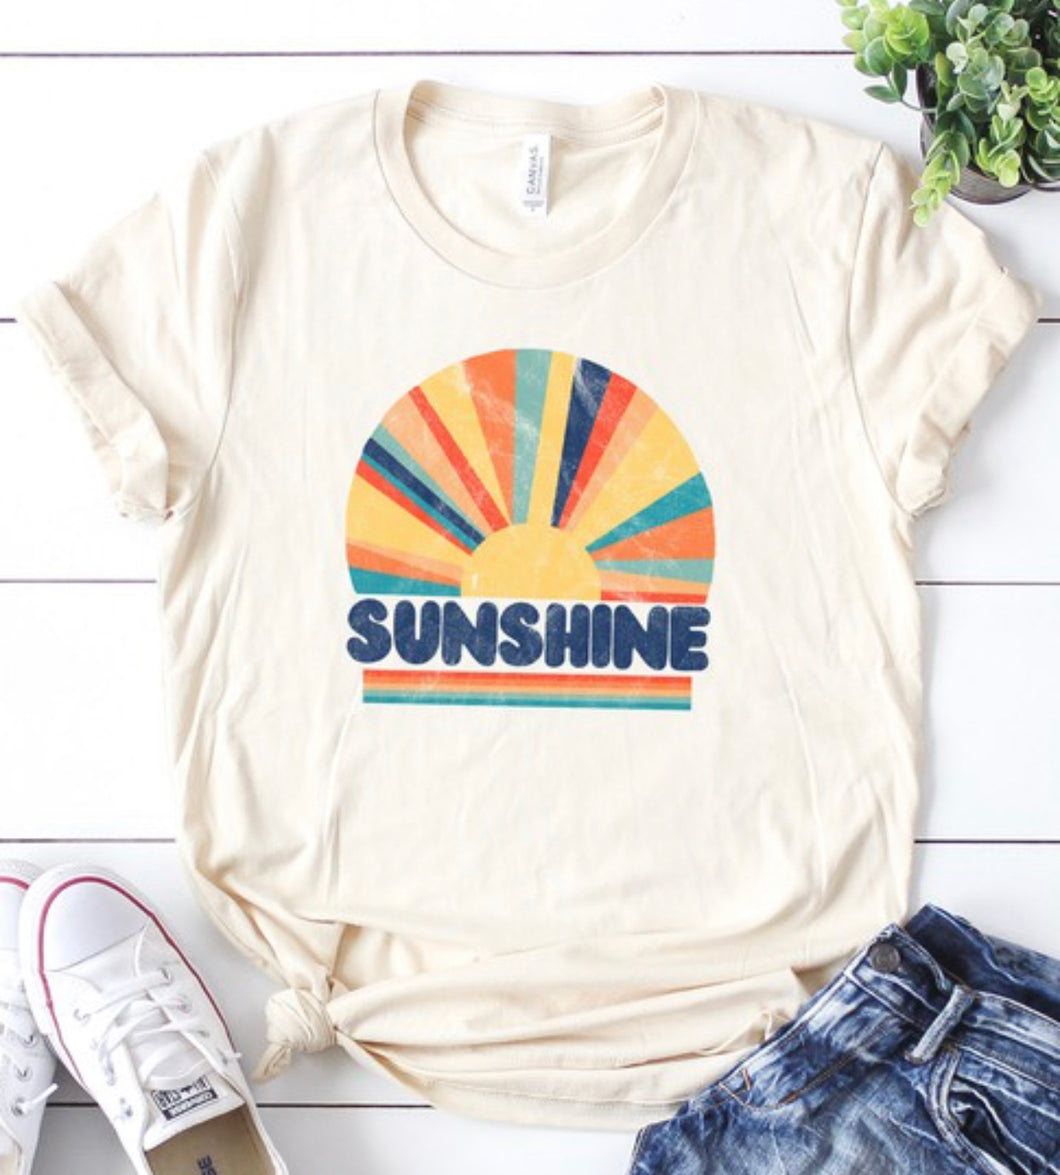 Vintage Sunshine Distressed Graphic Tee